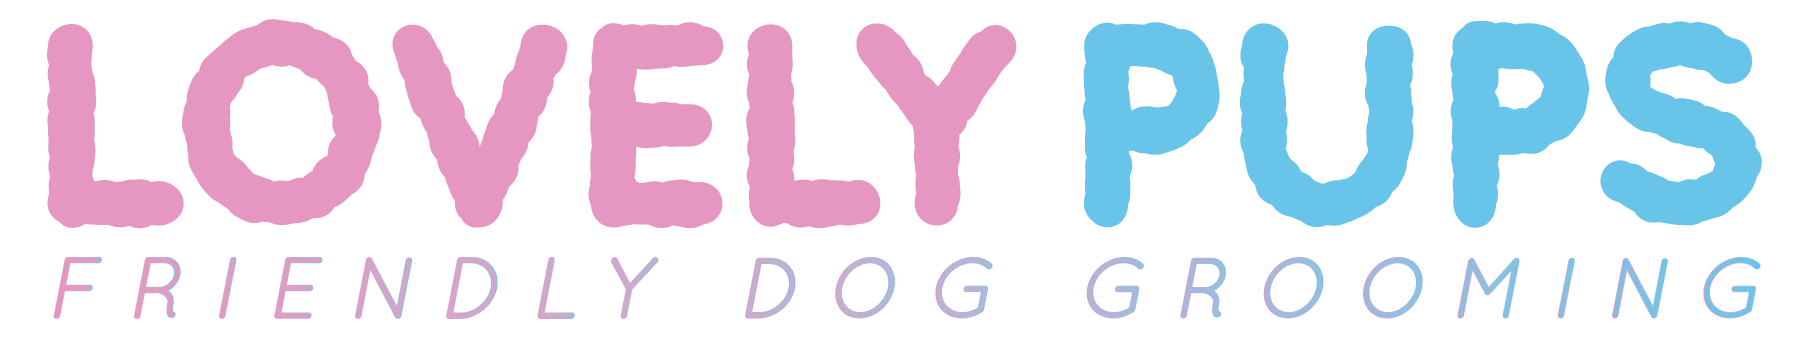 Lovely Pups - Friendly Dog Grooming